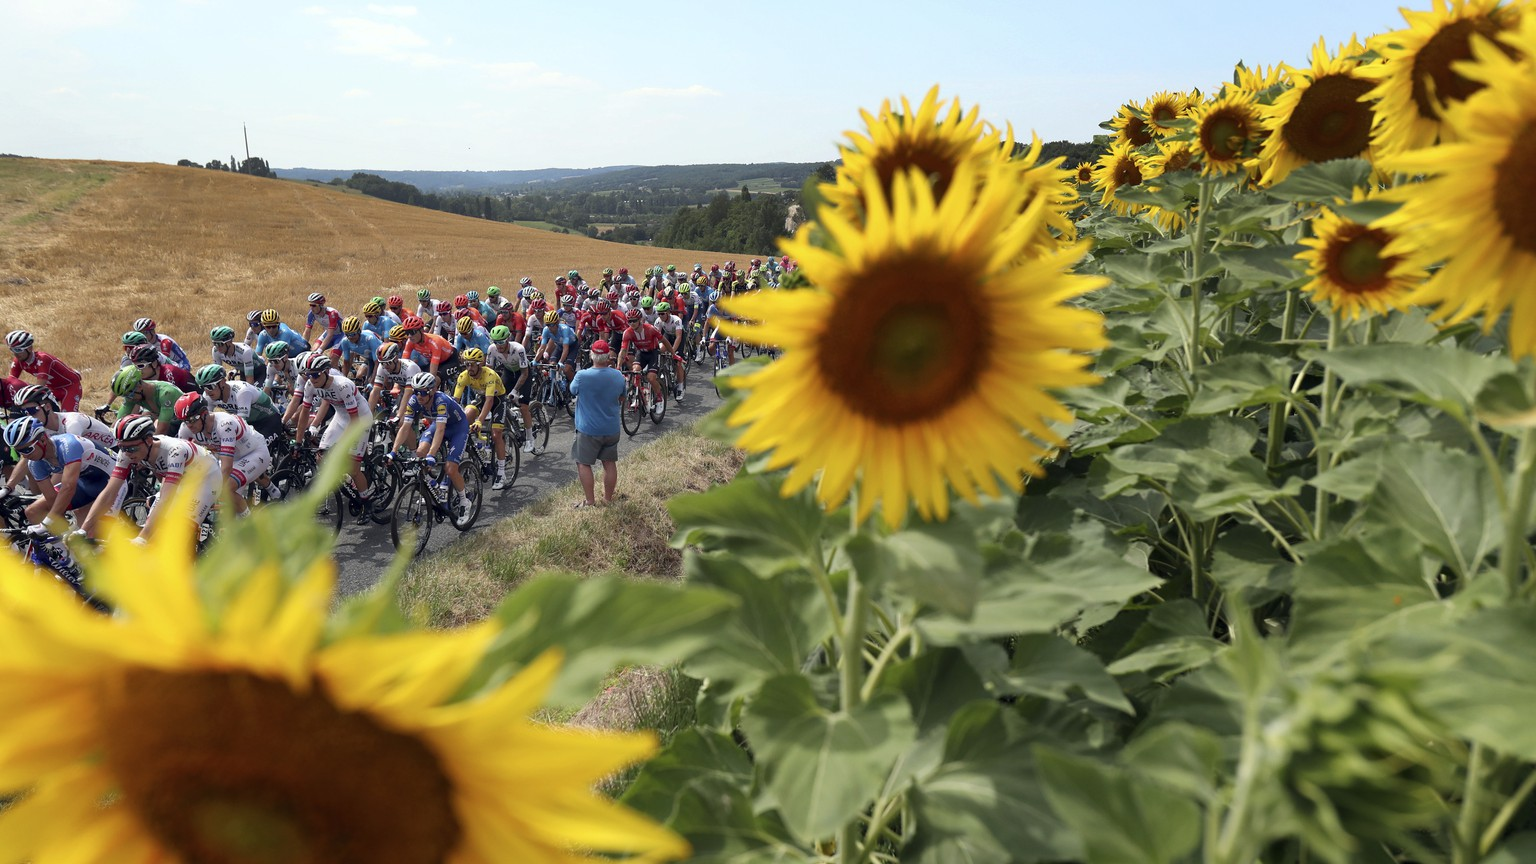 The pack rides past a sunflowers fields during the eleventh stage of the Tour de France cycling race over 167 kilometers (103,77 miles) with start in Albi and finish in Toulouse, France, Wednesday, July 17, 2019. (AP Photo/Thibault Camus)